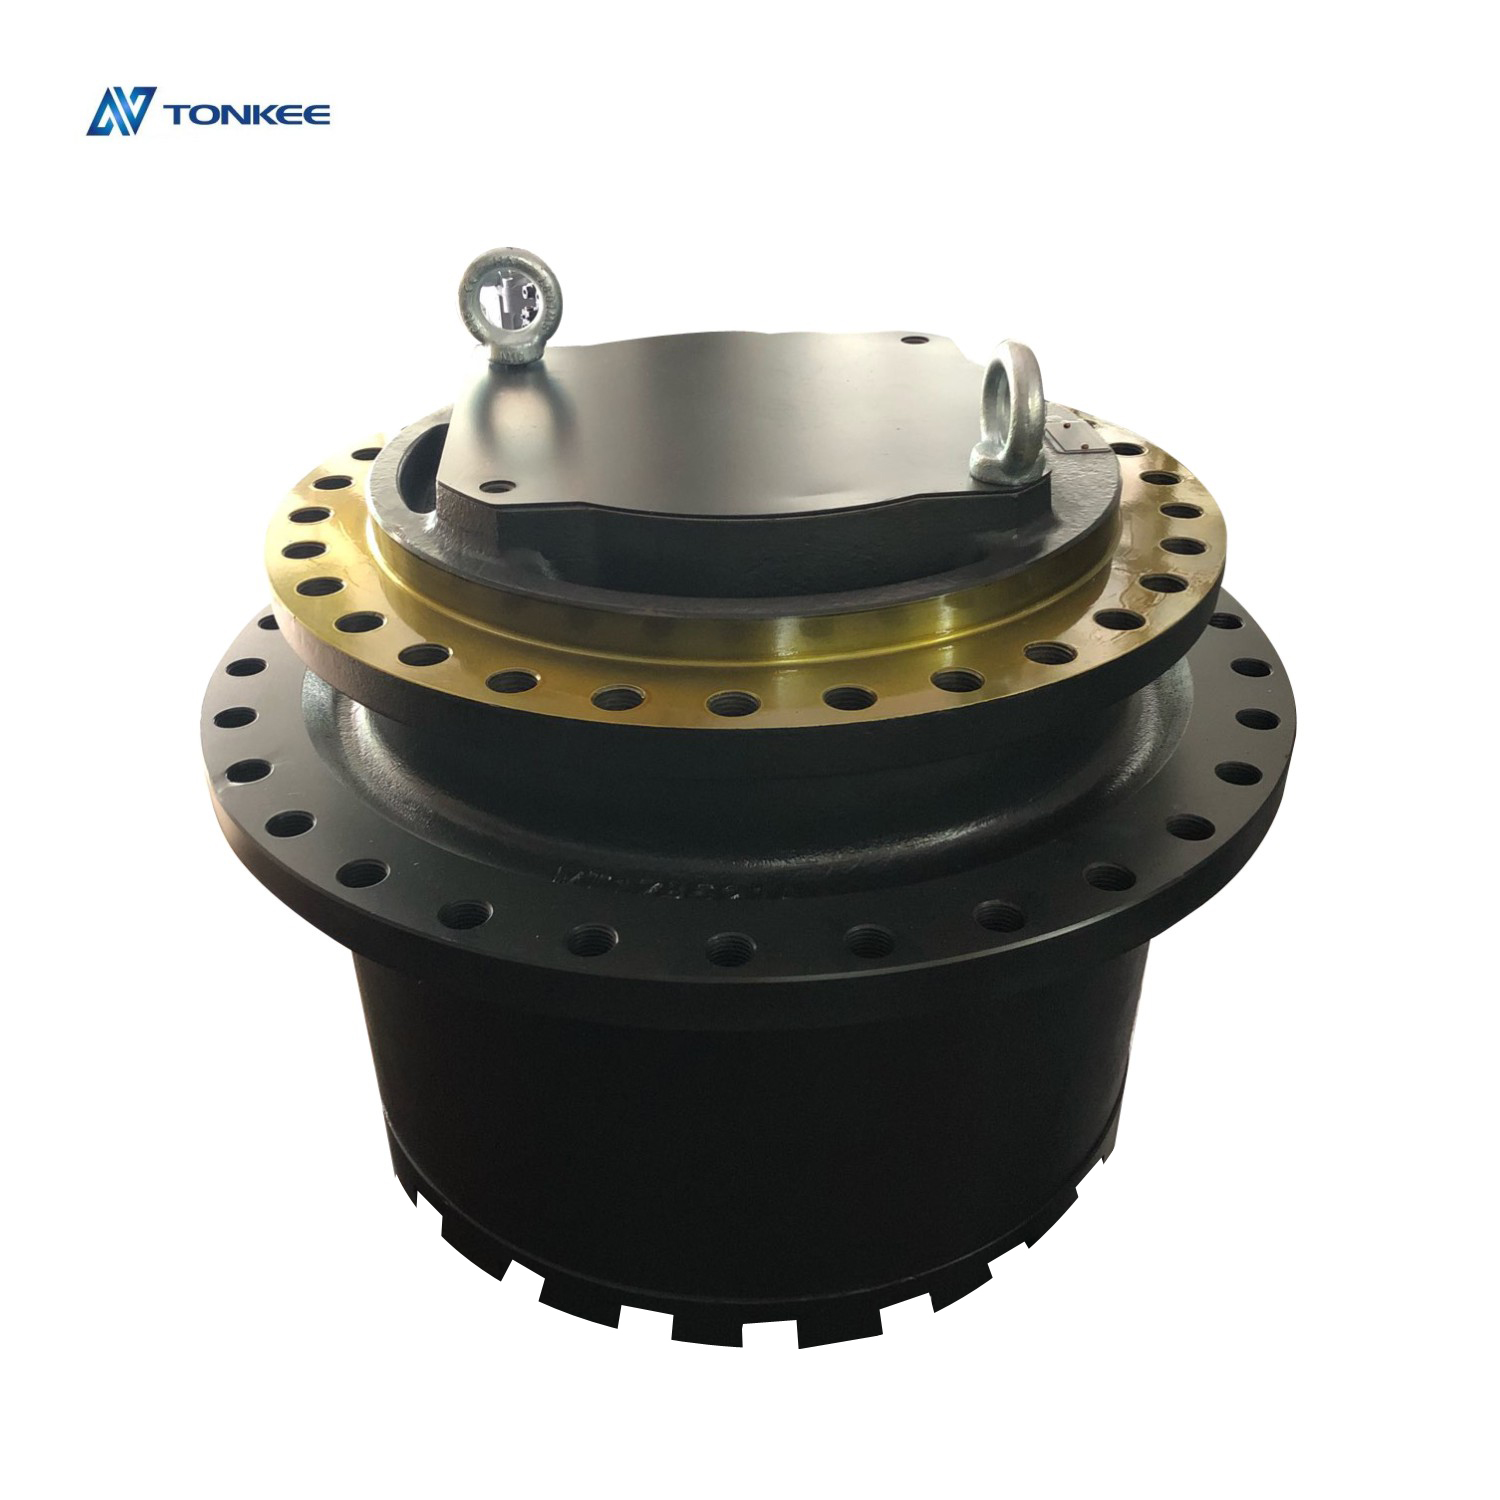 WT17BC speed reducer OKUBO gear 80 ton excavator final drive group PC750 PC800 PC850-8 SK850 travel gearbox